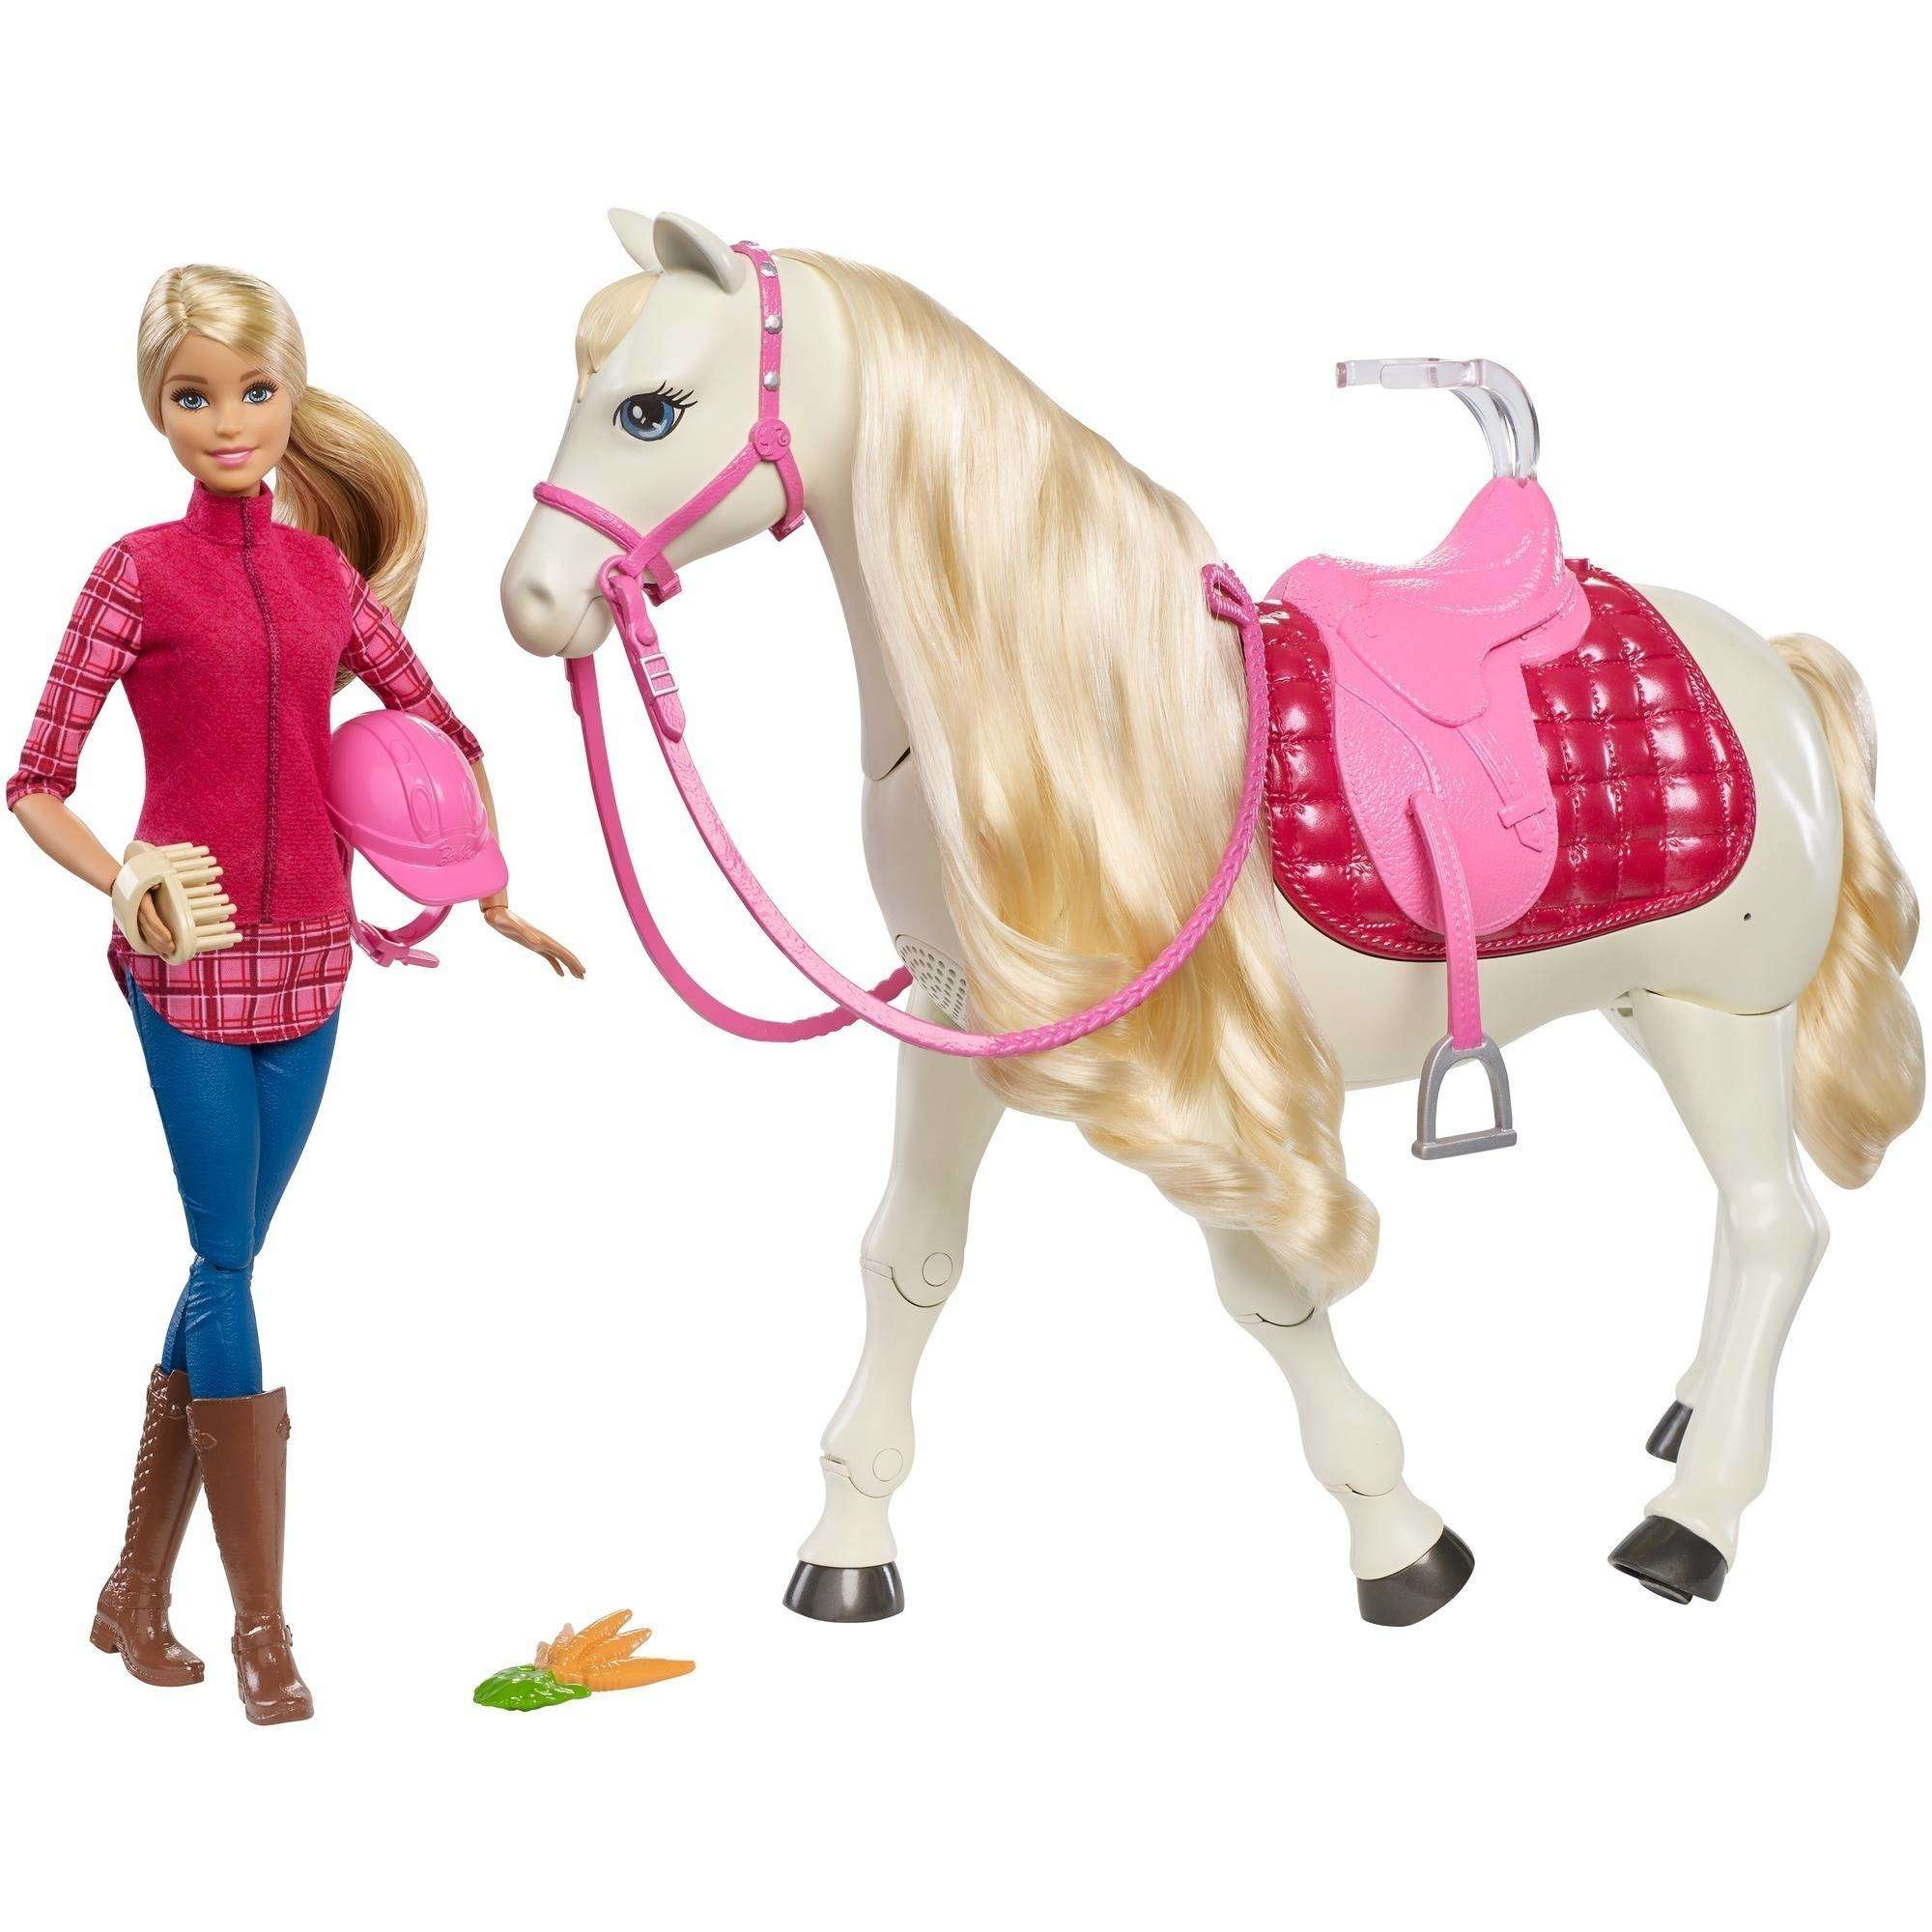 Barbie DreamHorse and Barbie Doll